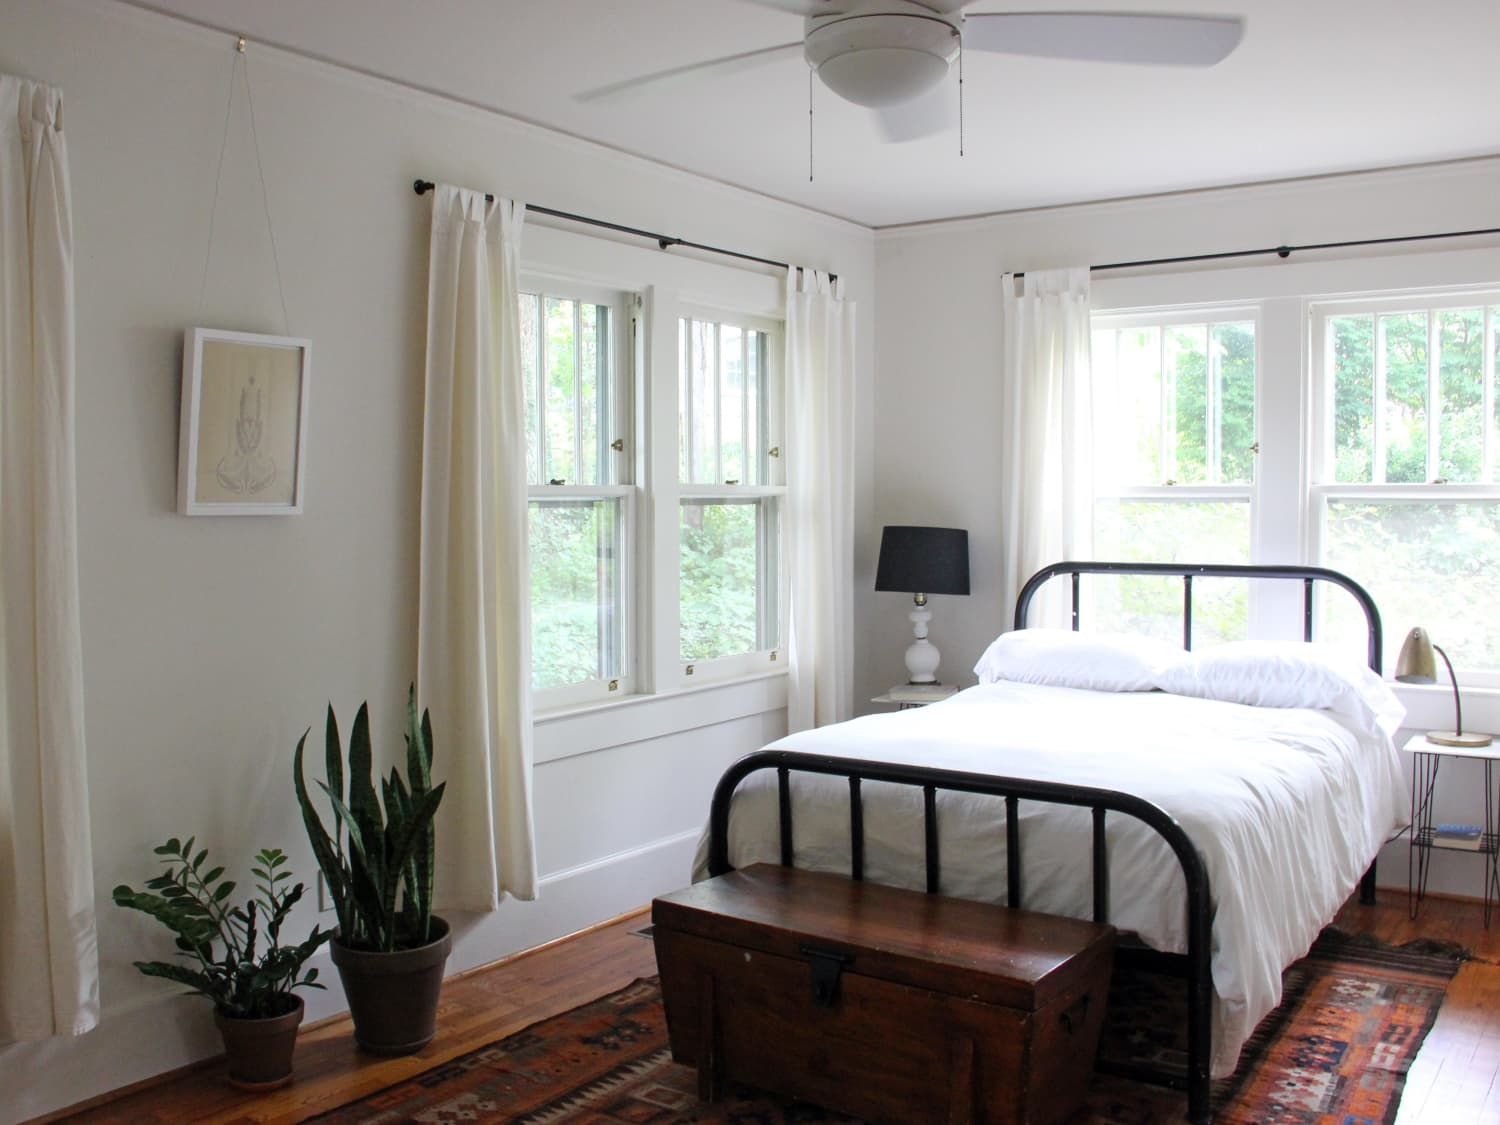 How To Hang Curtains Without Drilling Into Walls Apartment Therapy